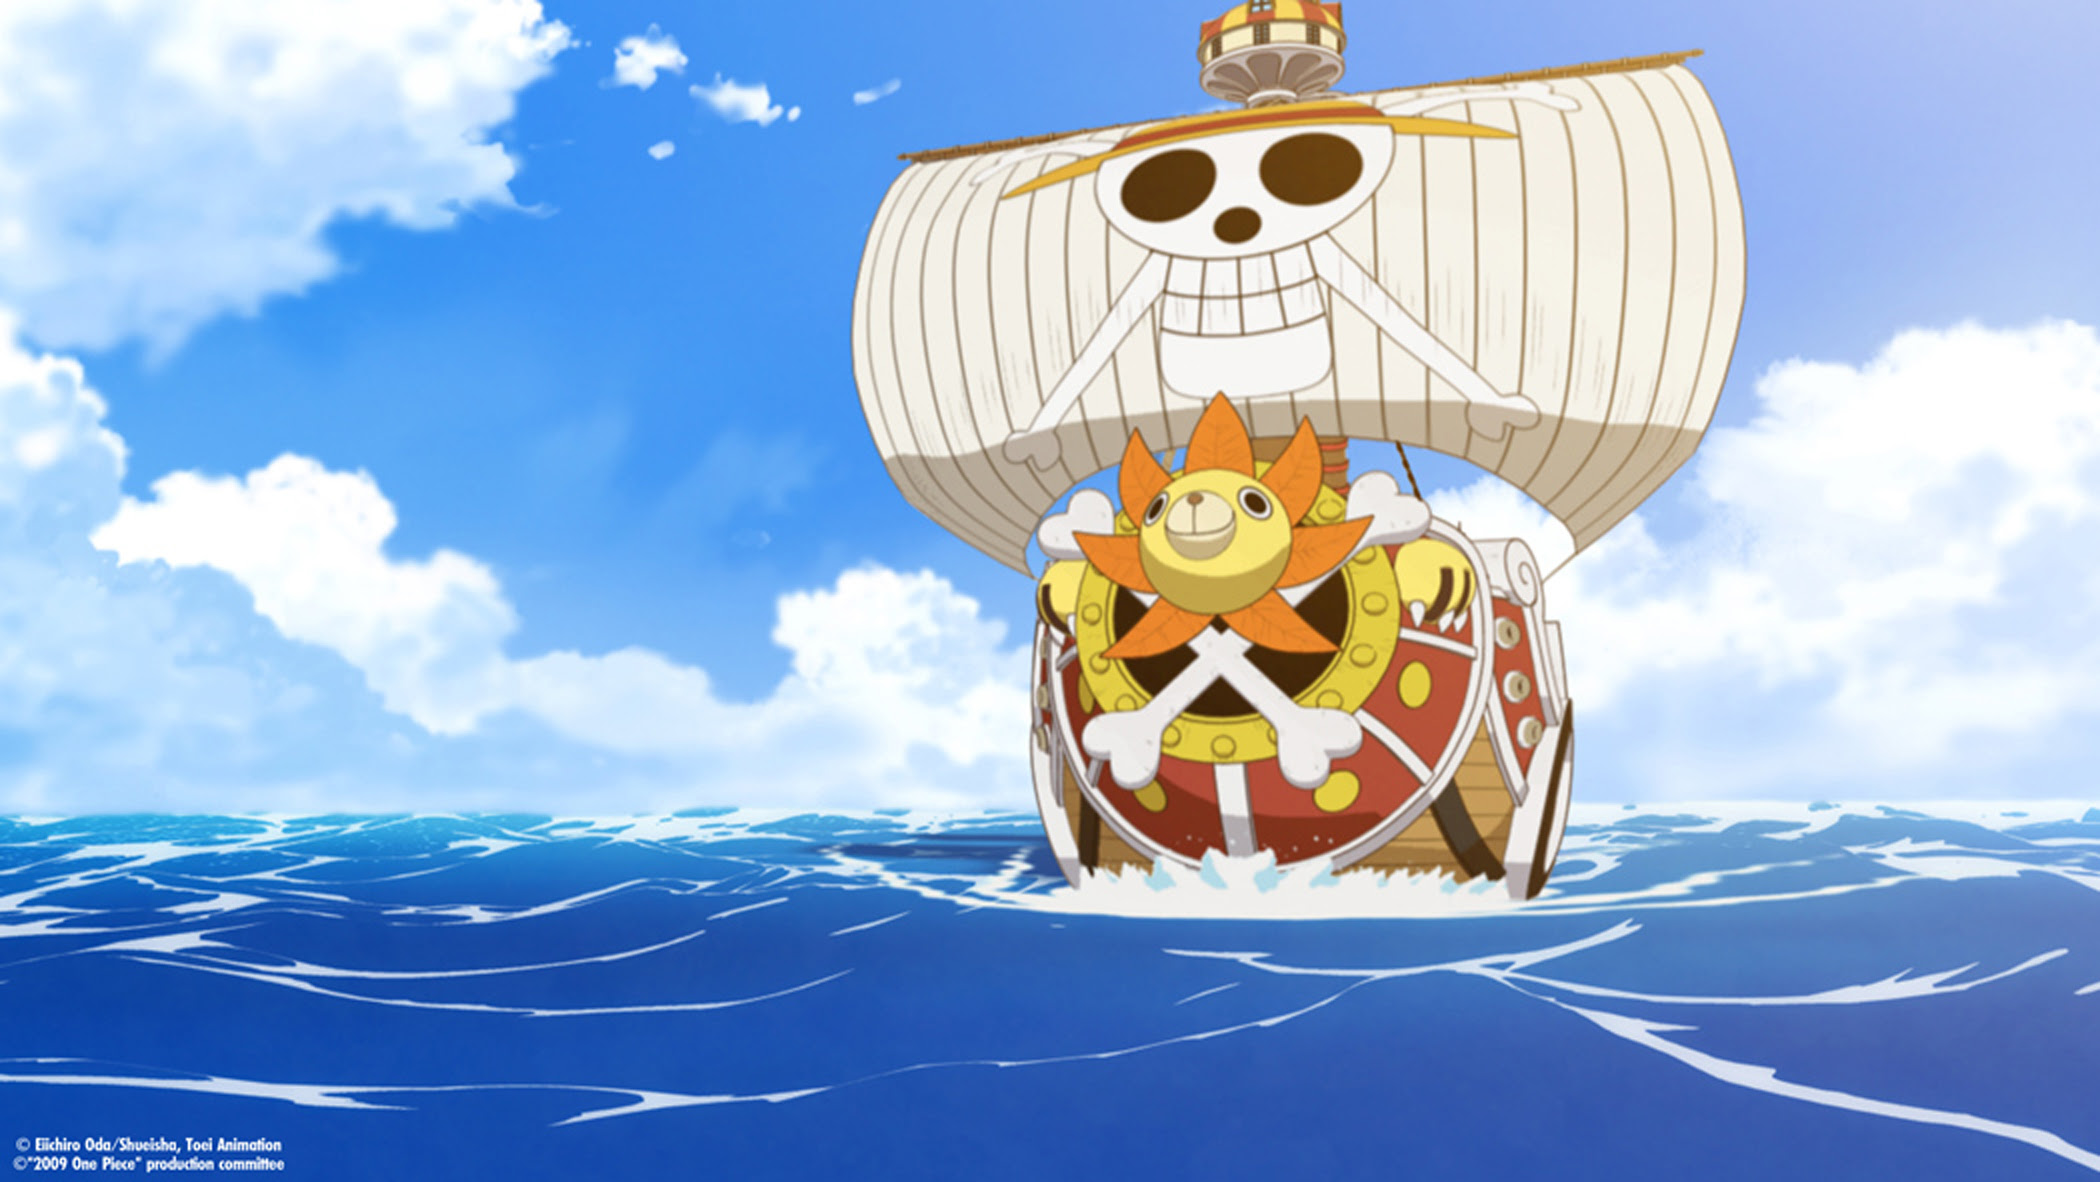 Wallpaper Pemandangan One Piece Thousand Sunny Wallpaper Hd